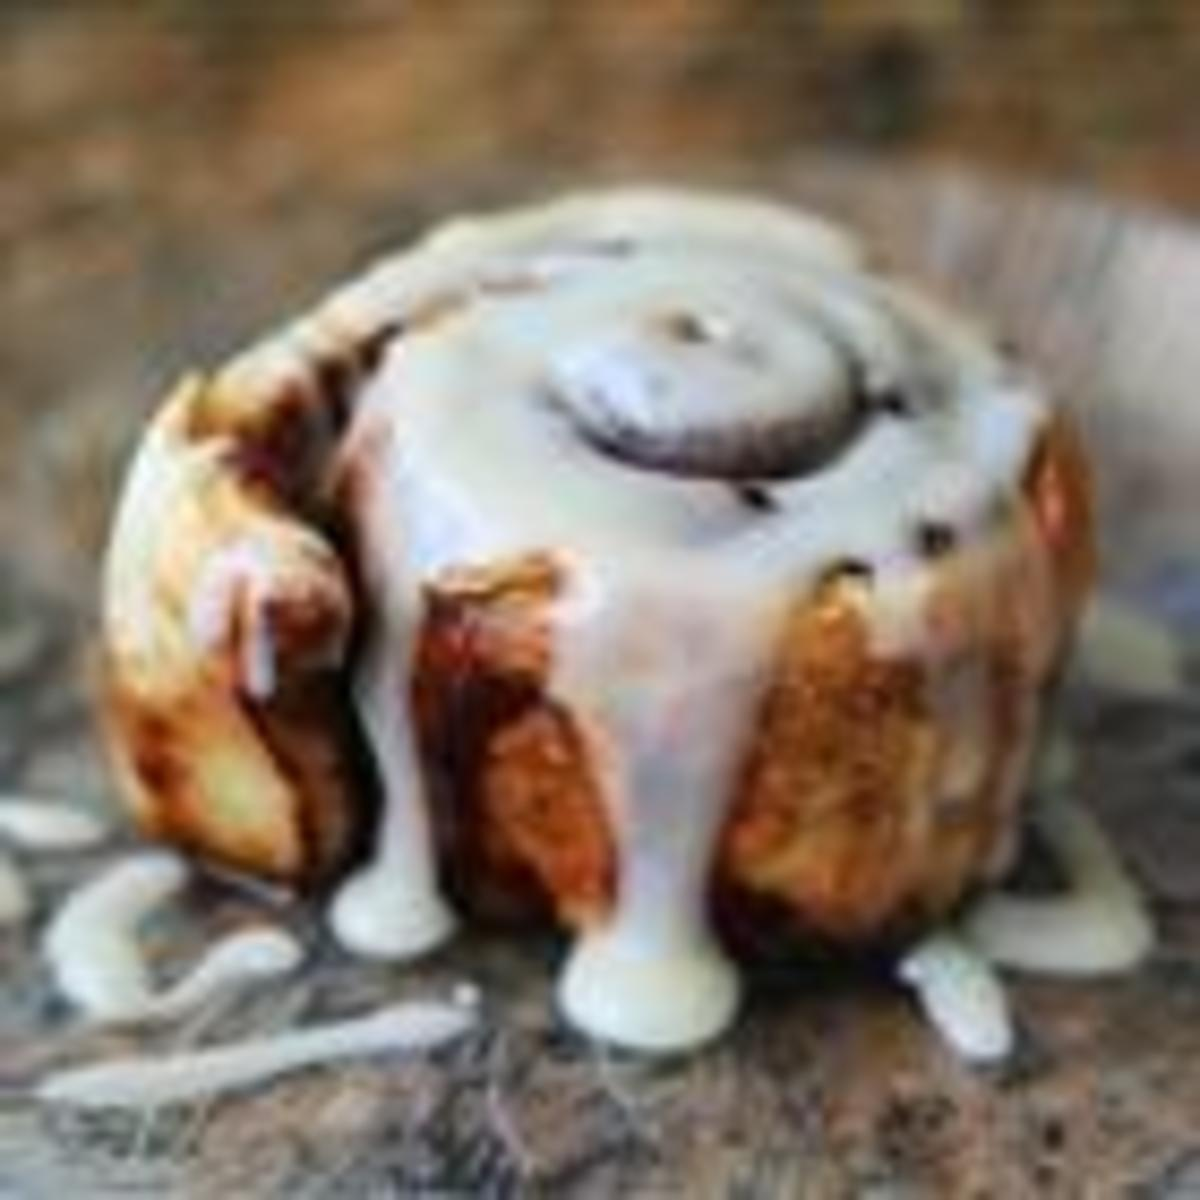 This is what your cinnamon bun should look like when done.